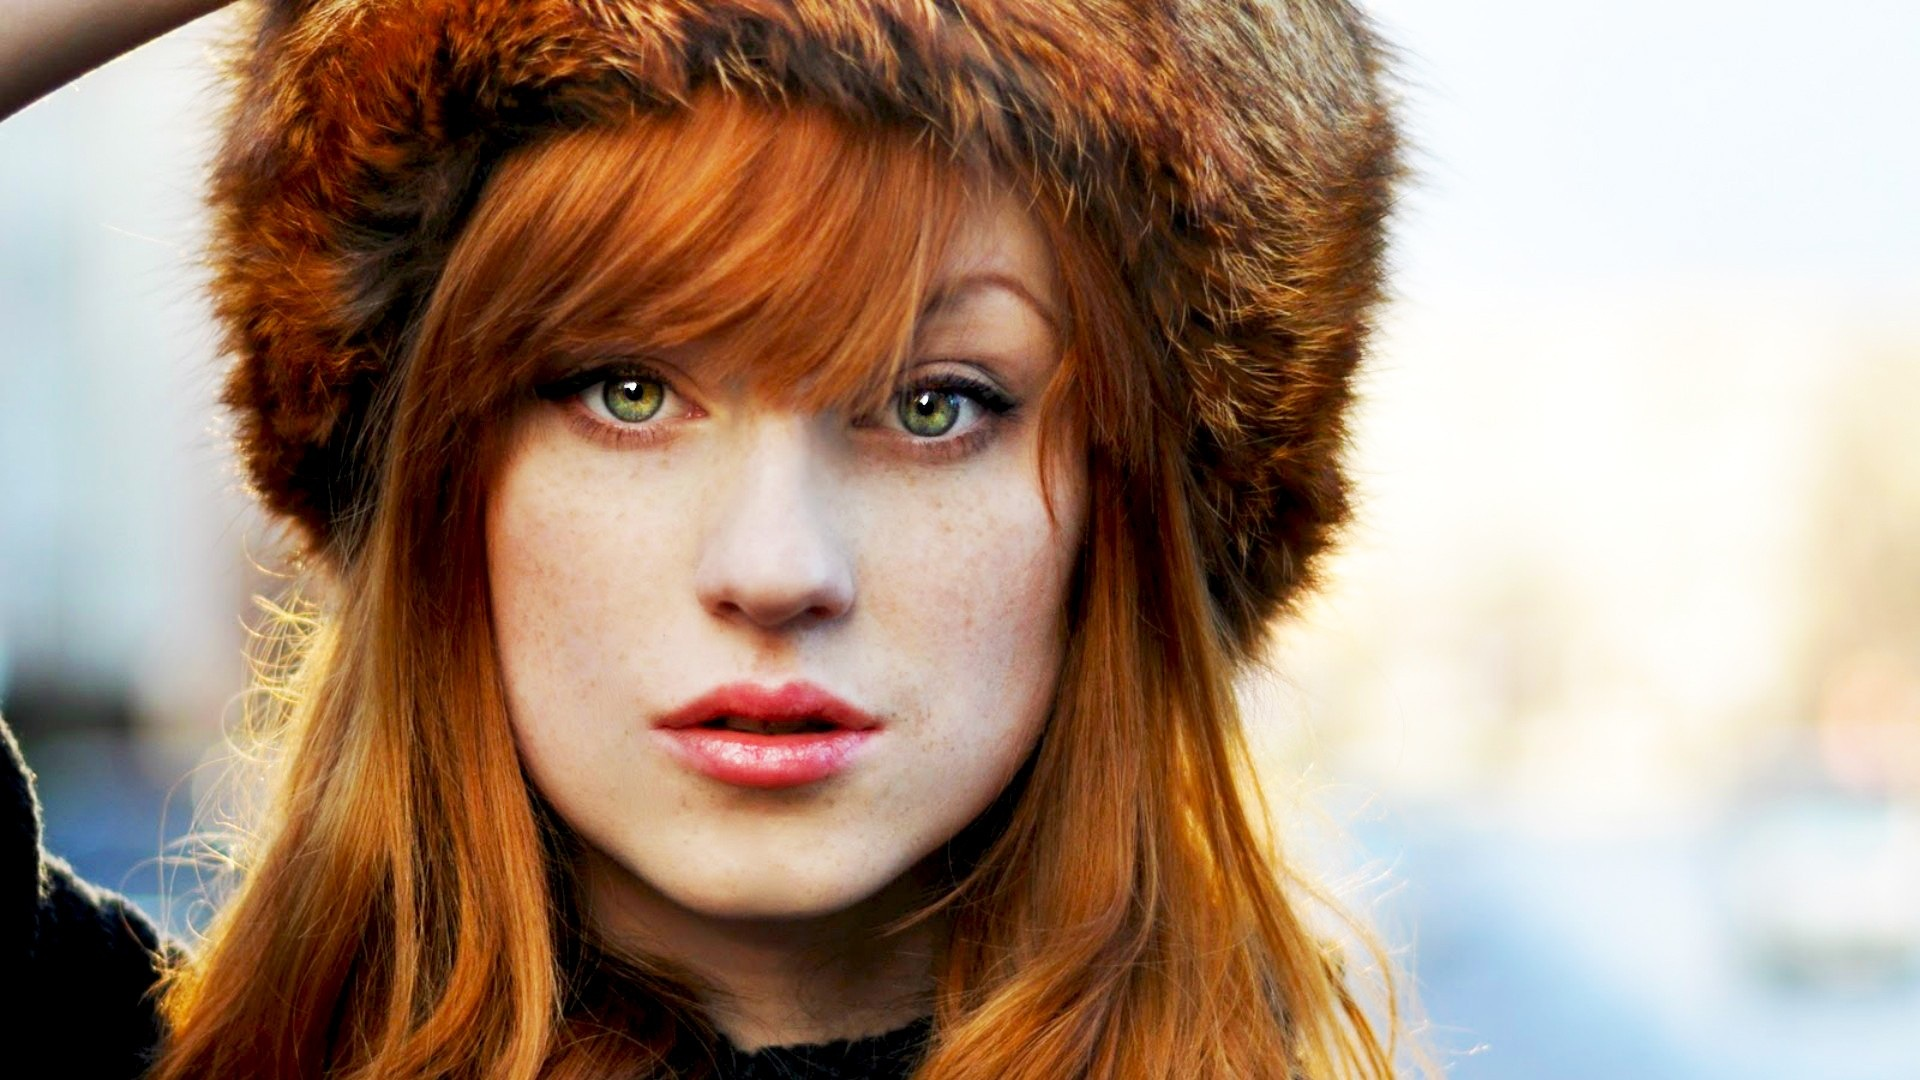 Beautiful Redhead Girl With Fur Hat